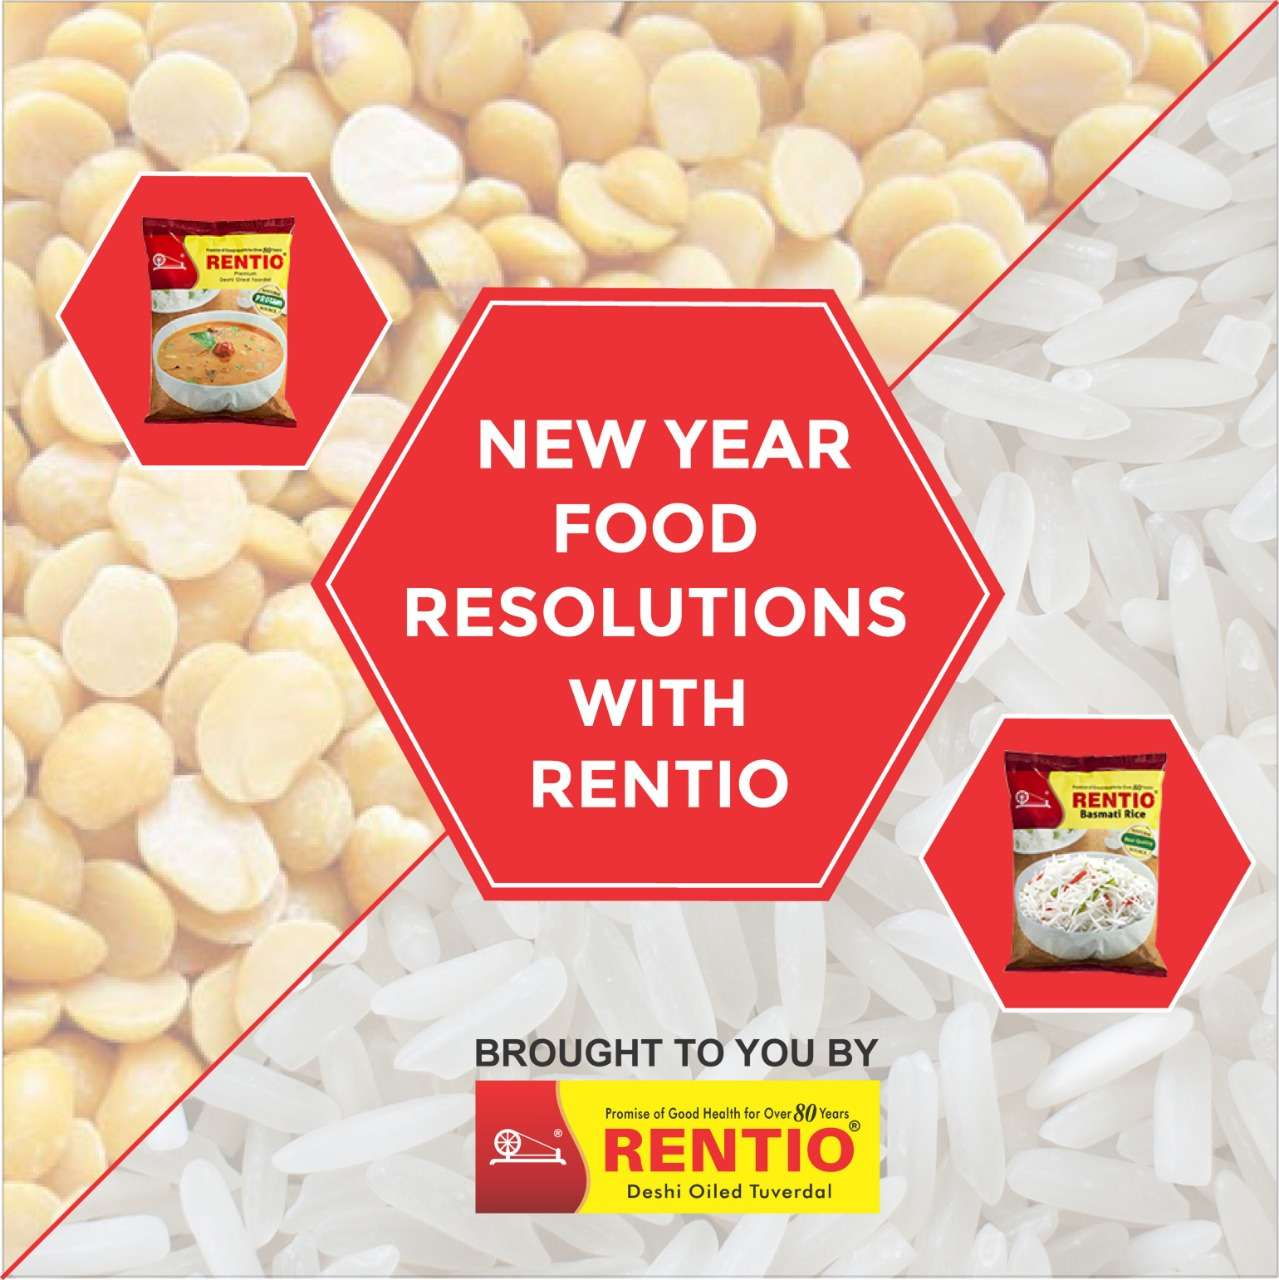 new year food resolutions-rentiofoods